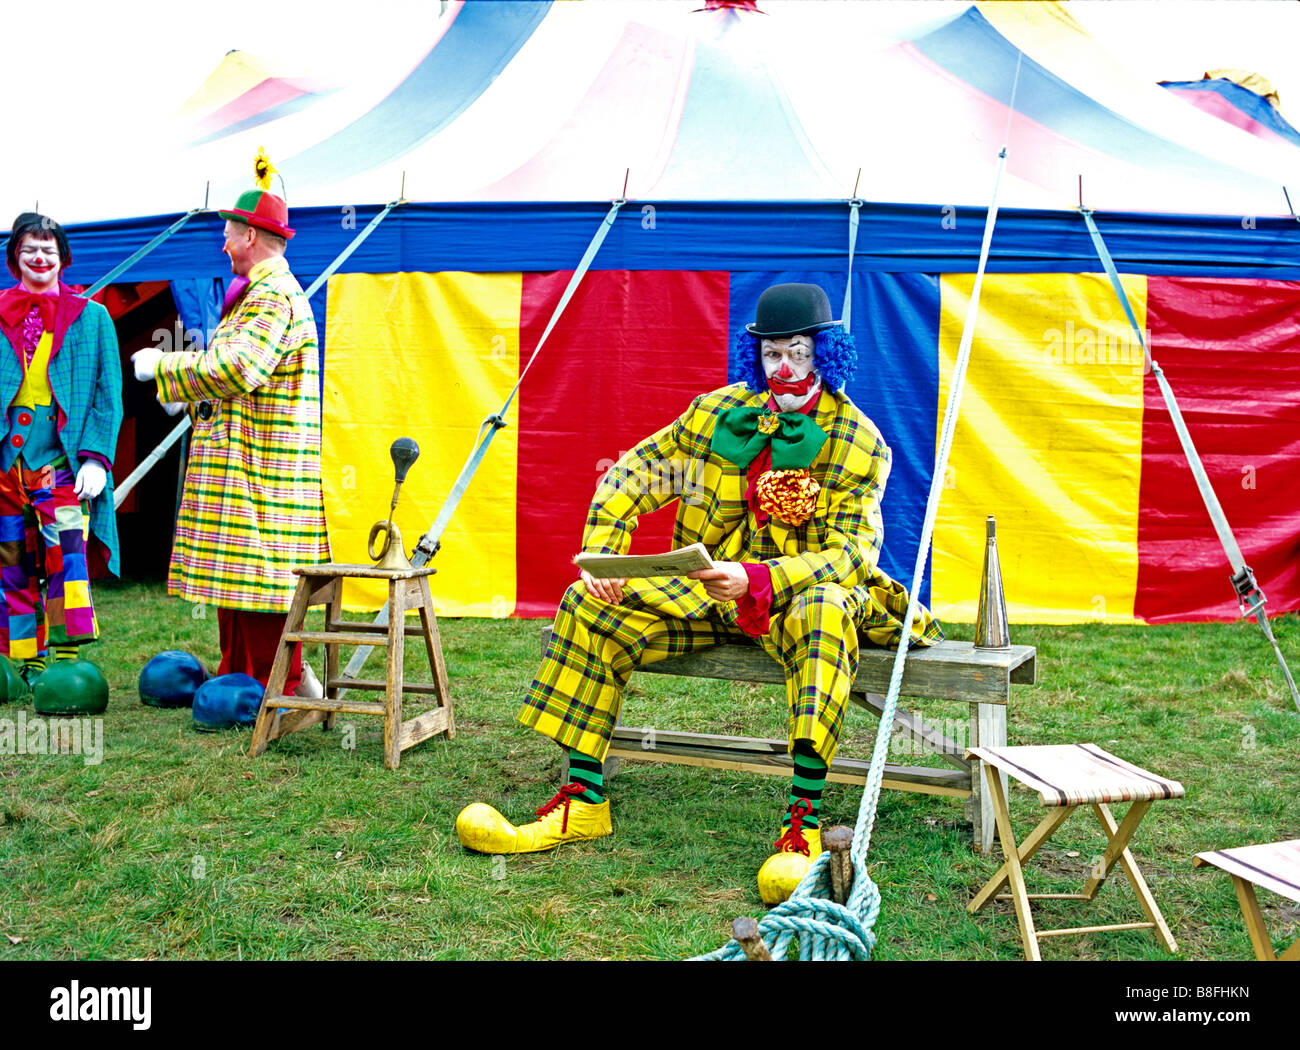 Clowns in front of circus tent  sc 1 st  Alamy & Clowns in front of circus tent Stock Photo: 22470777 - Alamy